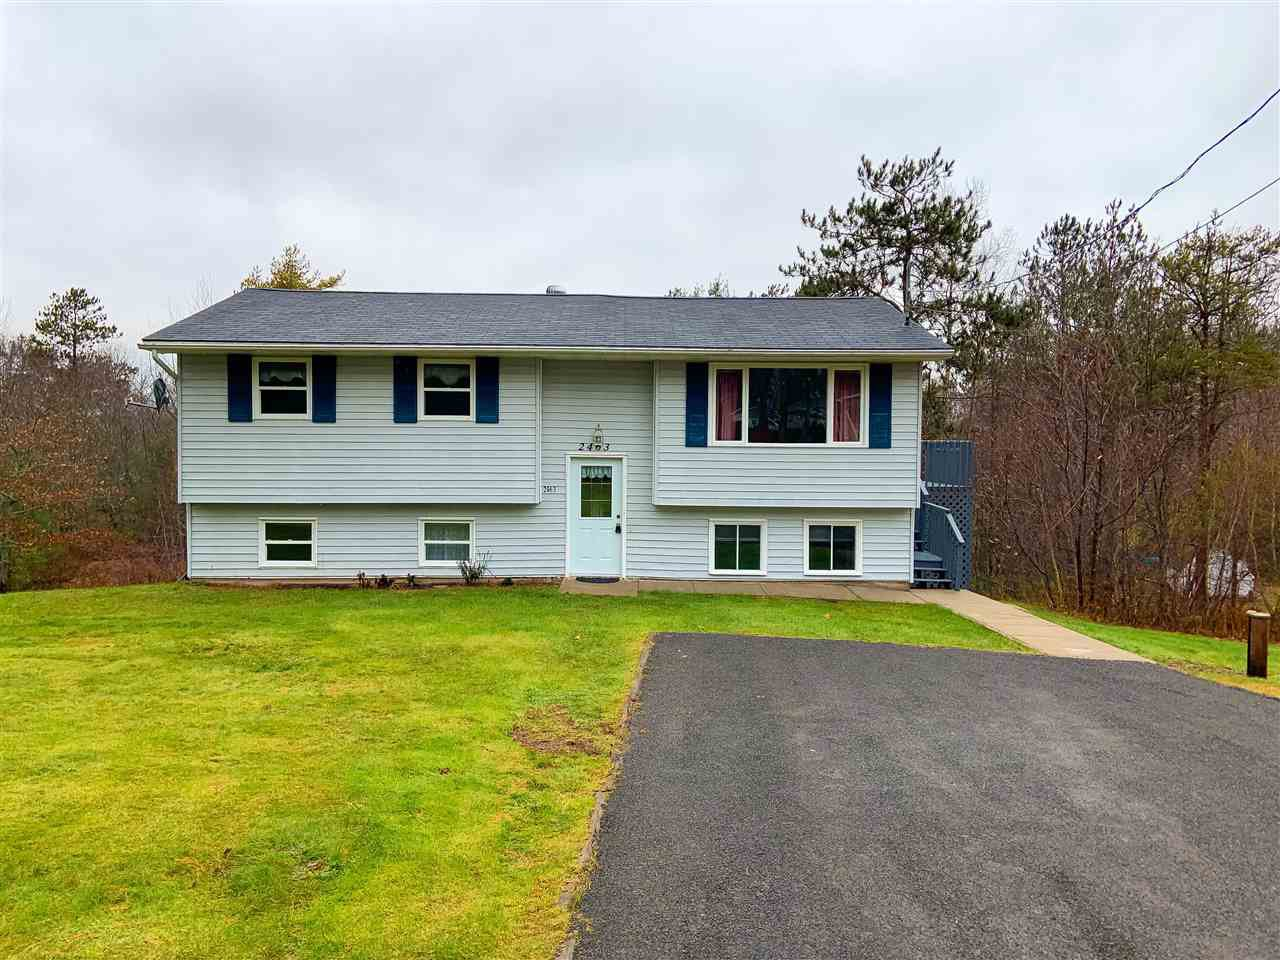 Main Photo: 2463 LORETTA Avenue in Coldbrook: 404-Kings County Residential for sale (Annapolis Valley)  : MLS®# 201926514